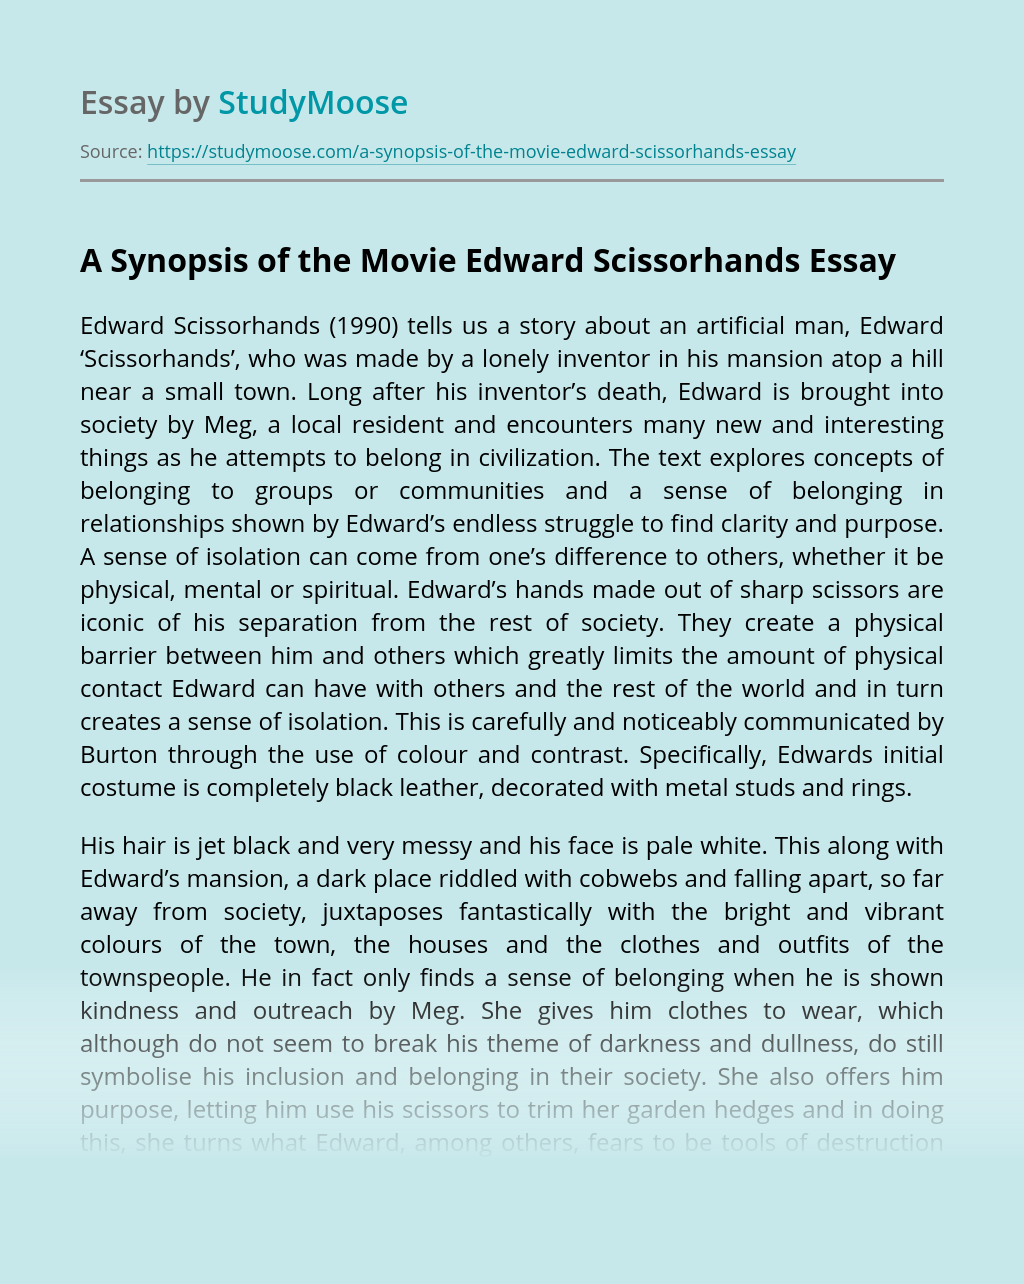 A Synopsis of the Movie Edward Scissorhands